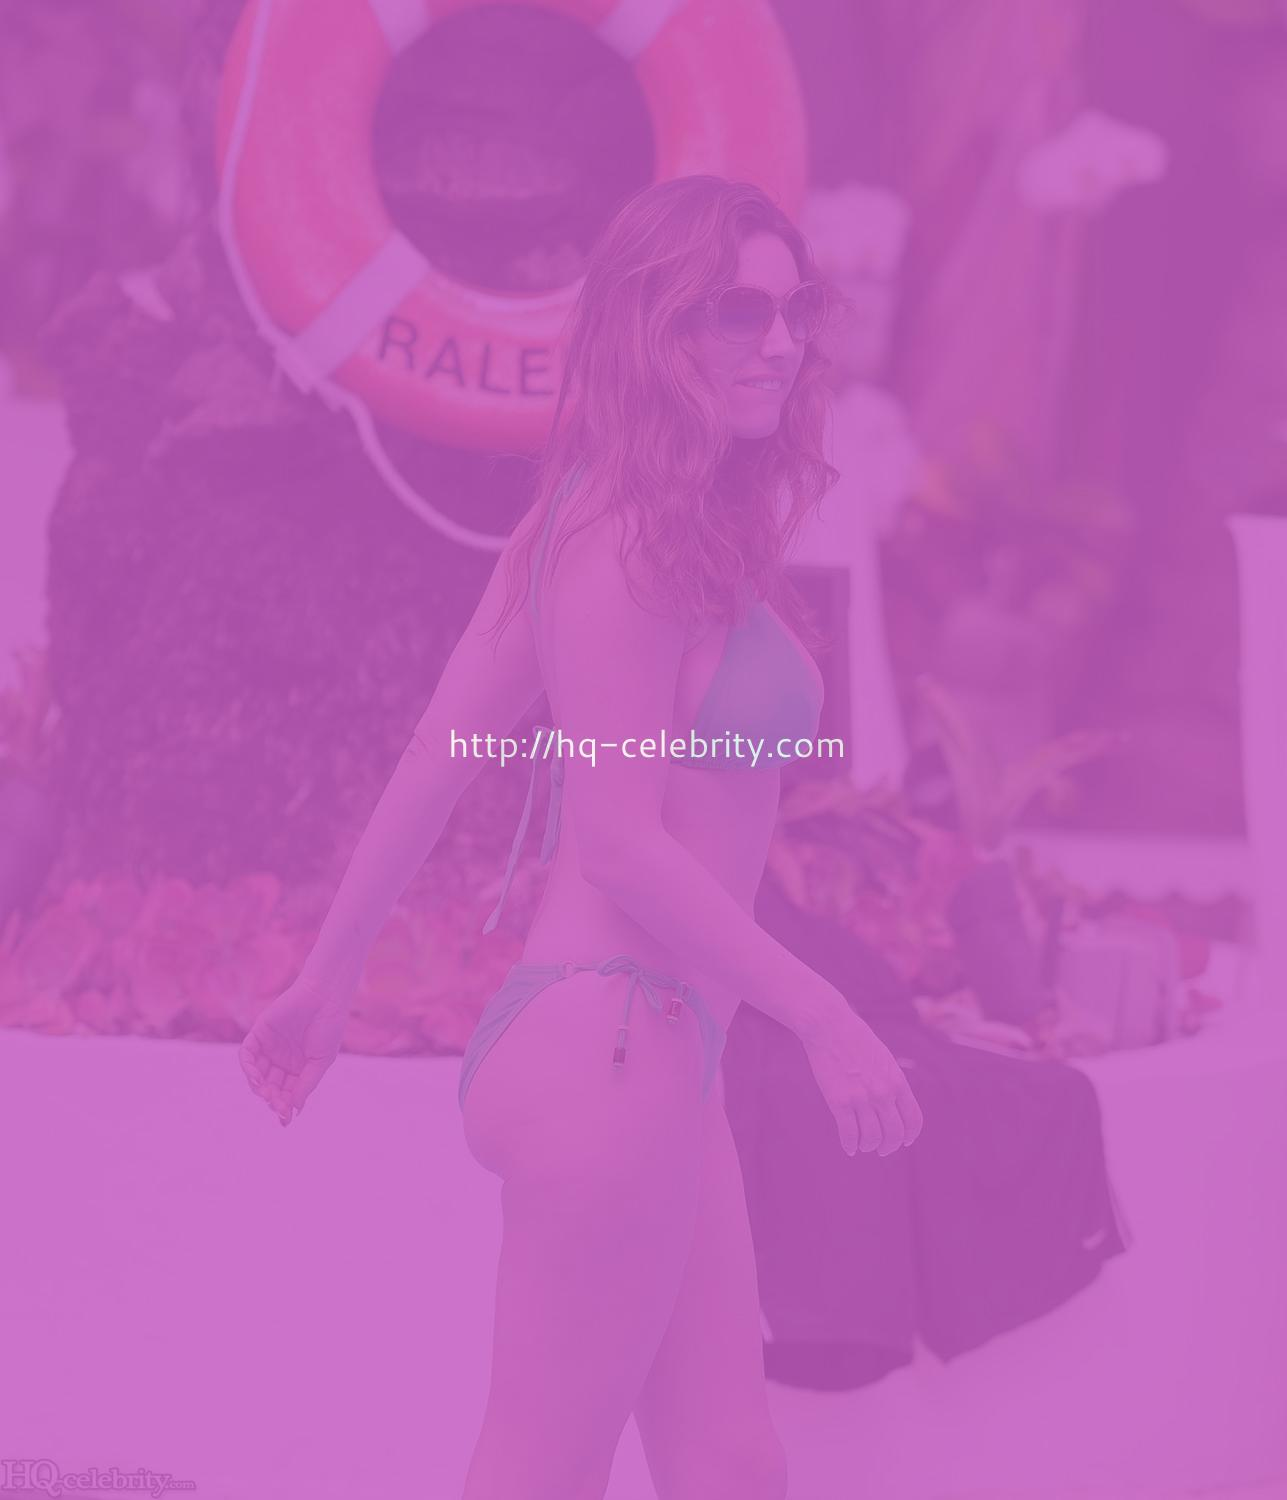 Celebrity Candids | Page 5 | CelebrityParadise - Hollywood ...